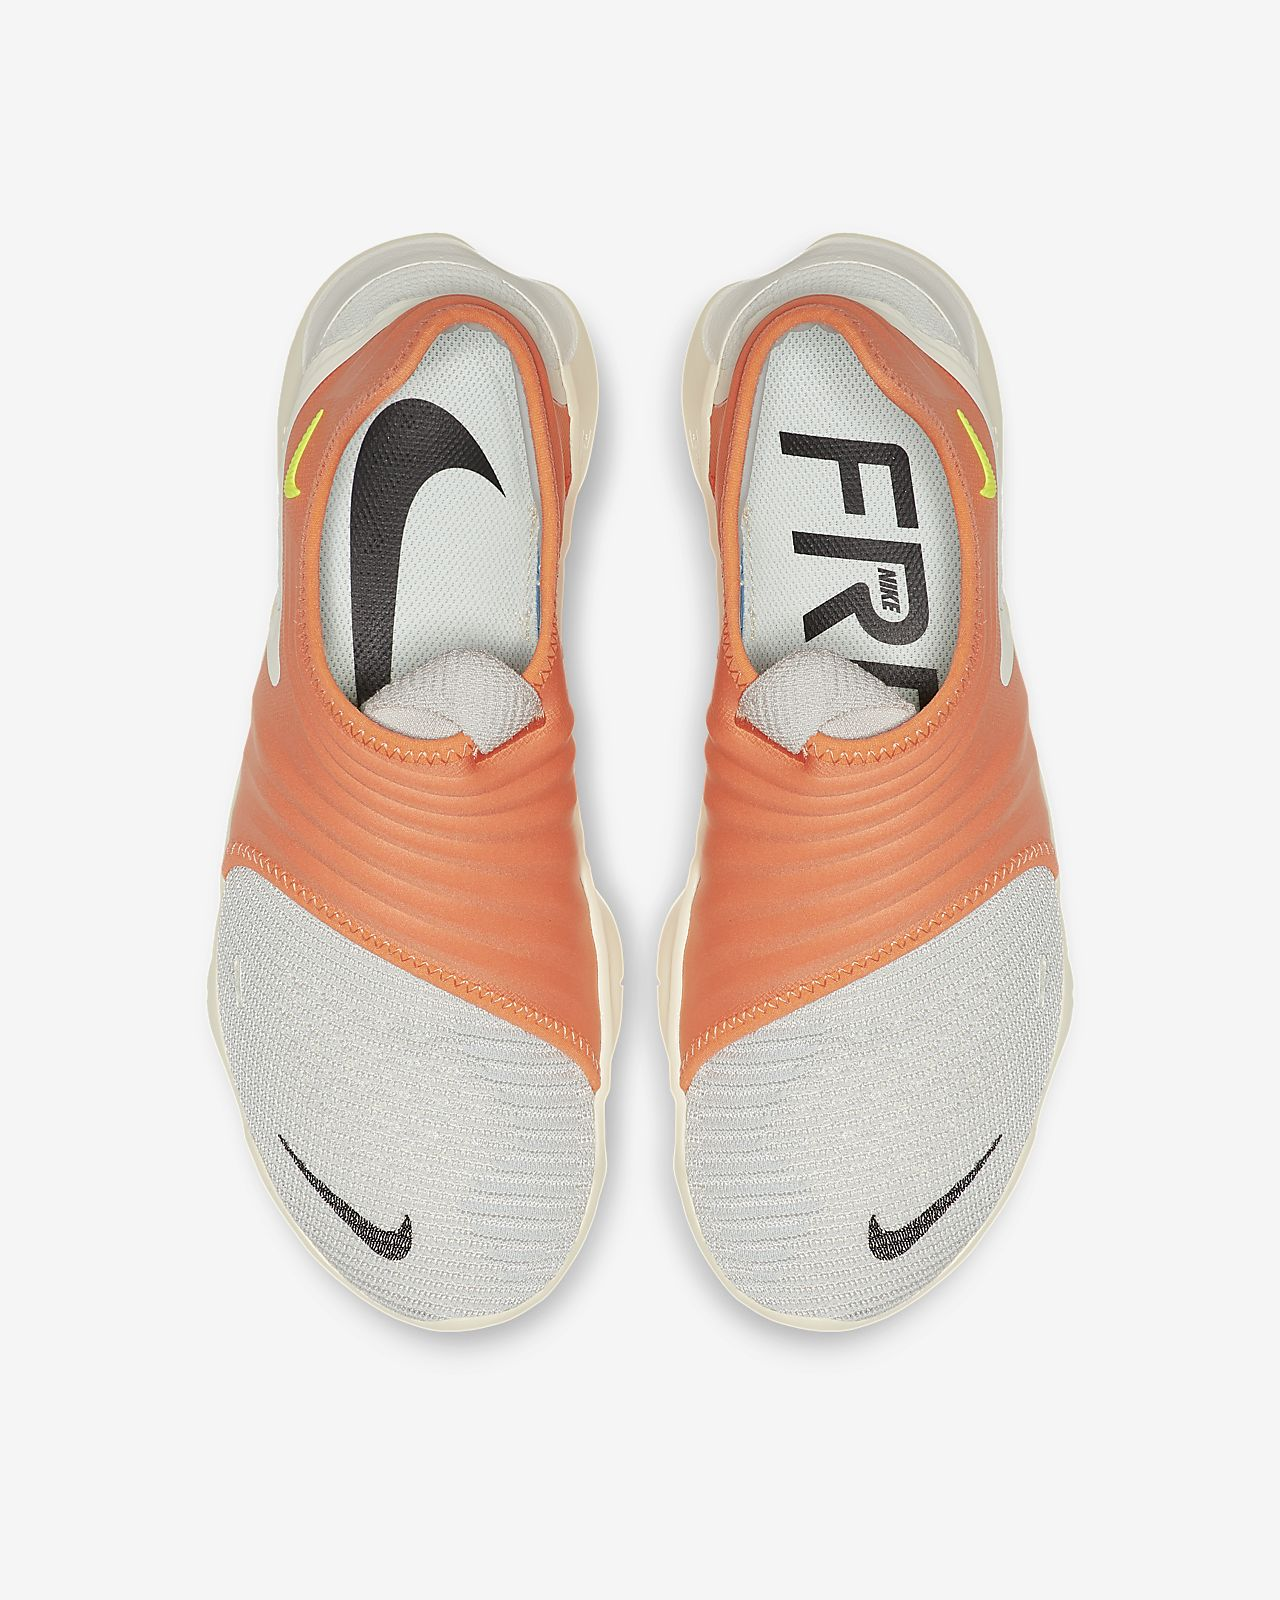 new products 8517c 8a903 Nike Free RN Flyknit 3.0 NRG Men's Running Shoe